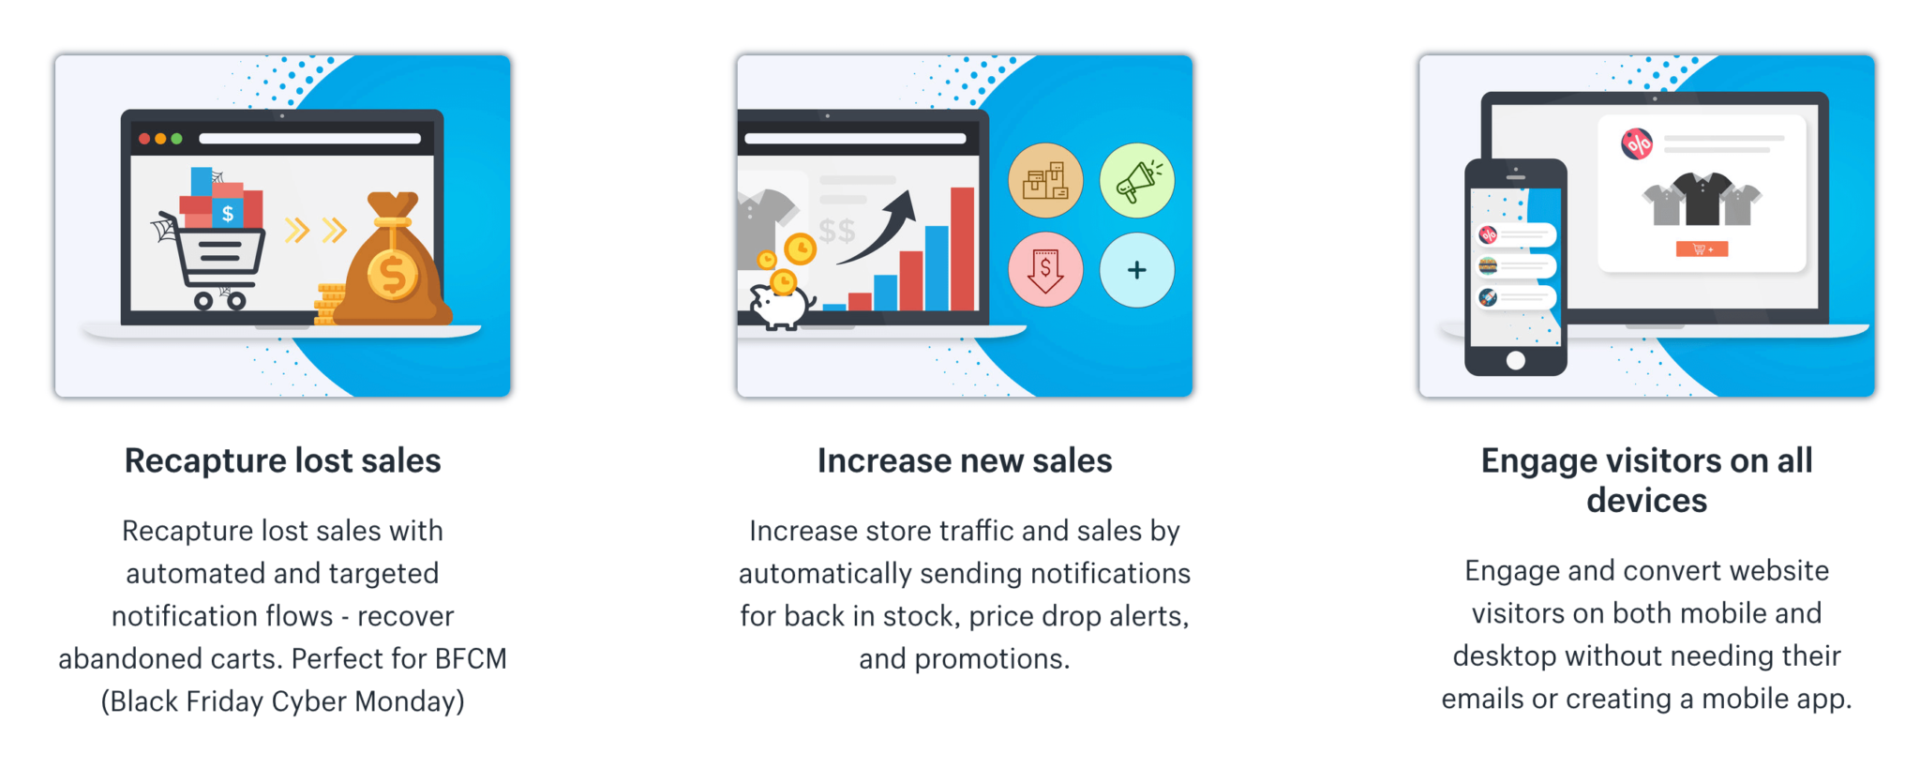 Smart Push Marketing racapture lost sales, increase new sales and engage visitors web pushes